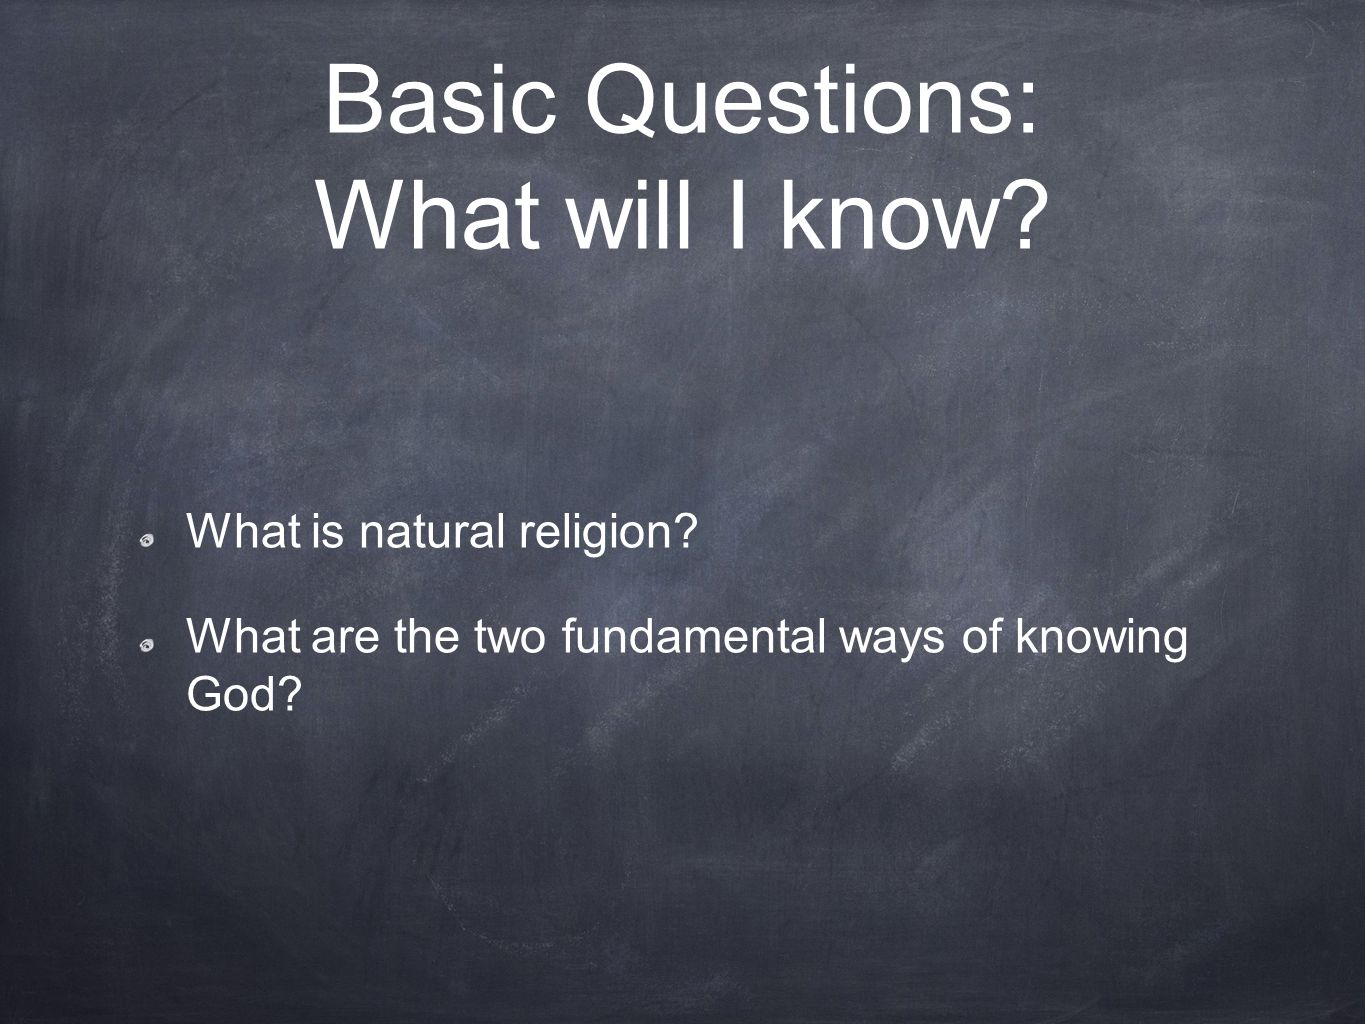 Basic Questions: What will I know? What is natural religion? What are the two fundamental ways of knowing God?